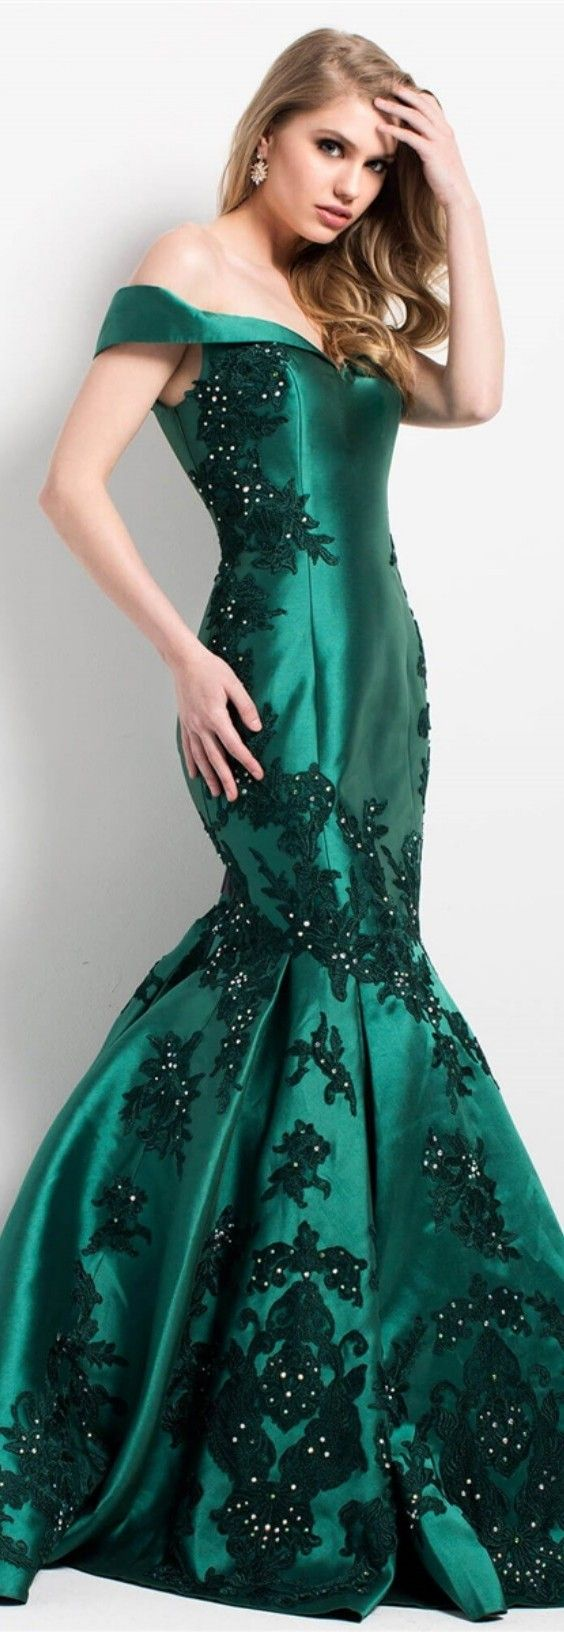 JOVANI ⚘In Emerald Mermaid-Style Funnel Skirt w. Hourglass Figure Styling Bodice On the Gown Black Petal Leaves w. Pearl Beaded Embellishments Throughout the Gown & Off-Shoulder Straps ⚘Style No. #55570.